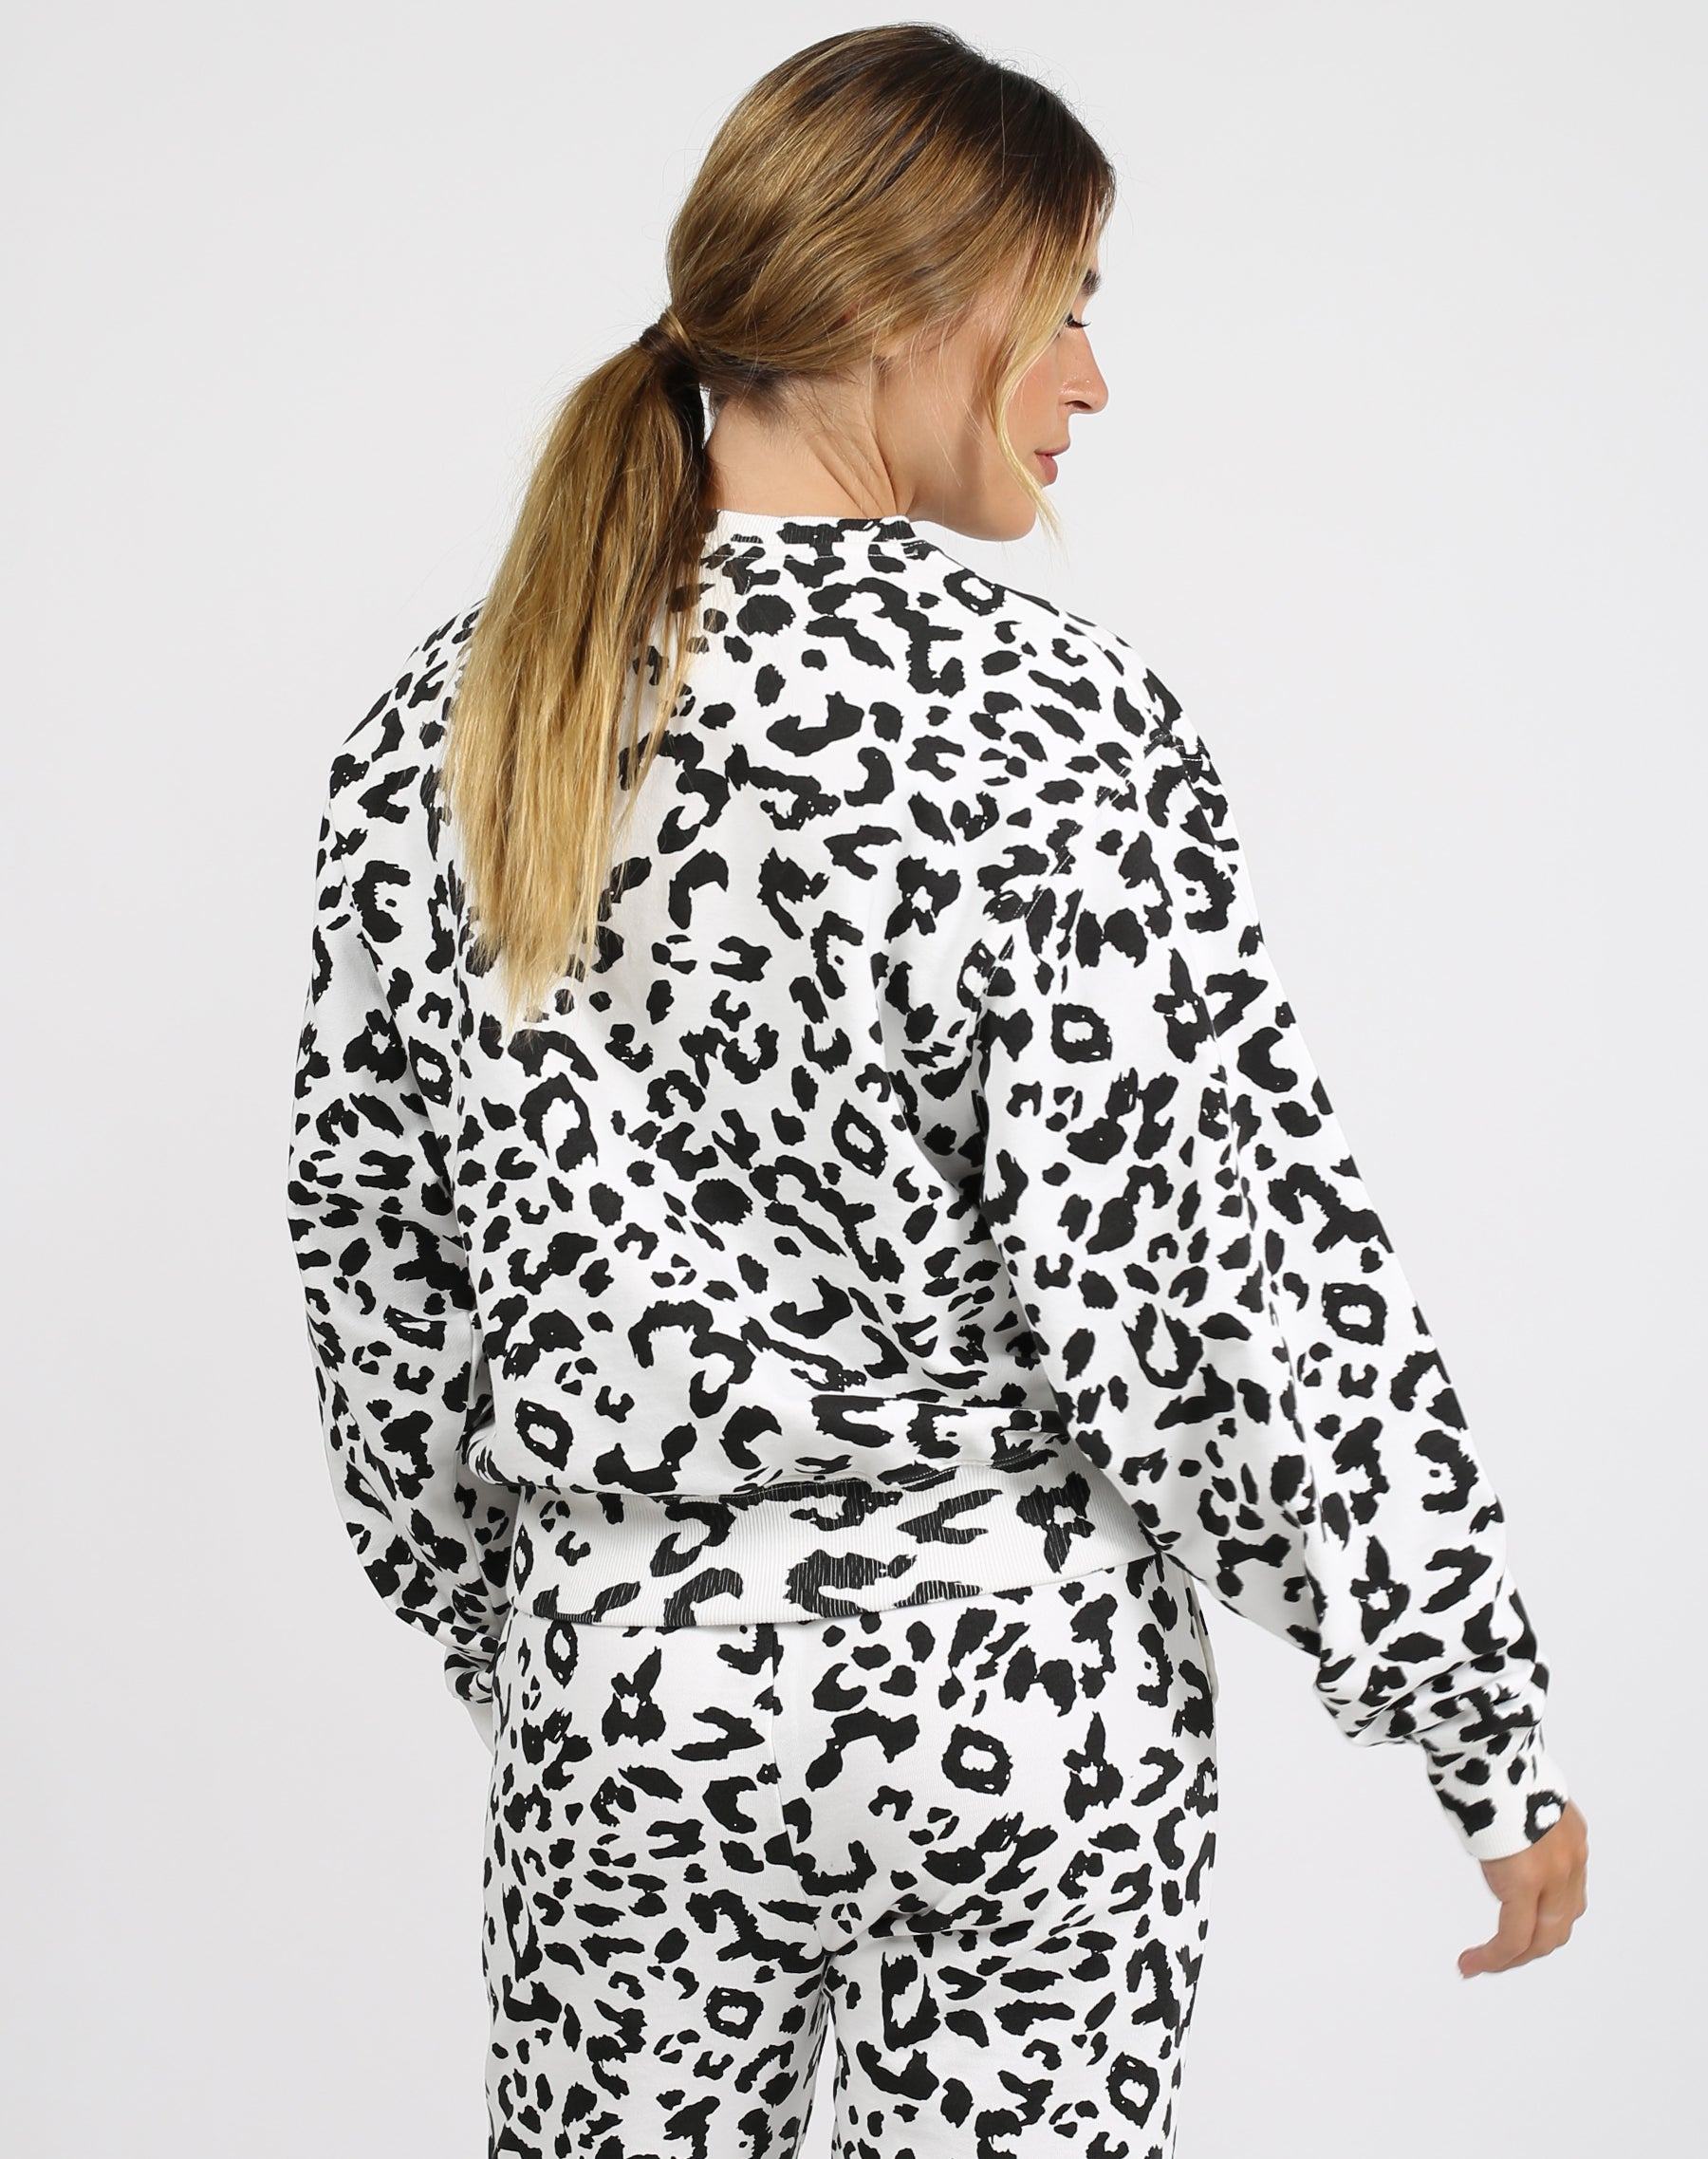 This is an image of the back of the Babes Social Club Best Friend Sweatsuit in Snow Leopard by Brunette the Label.